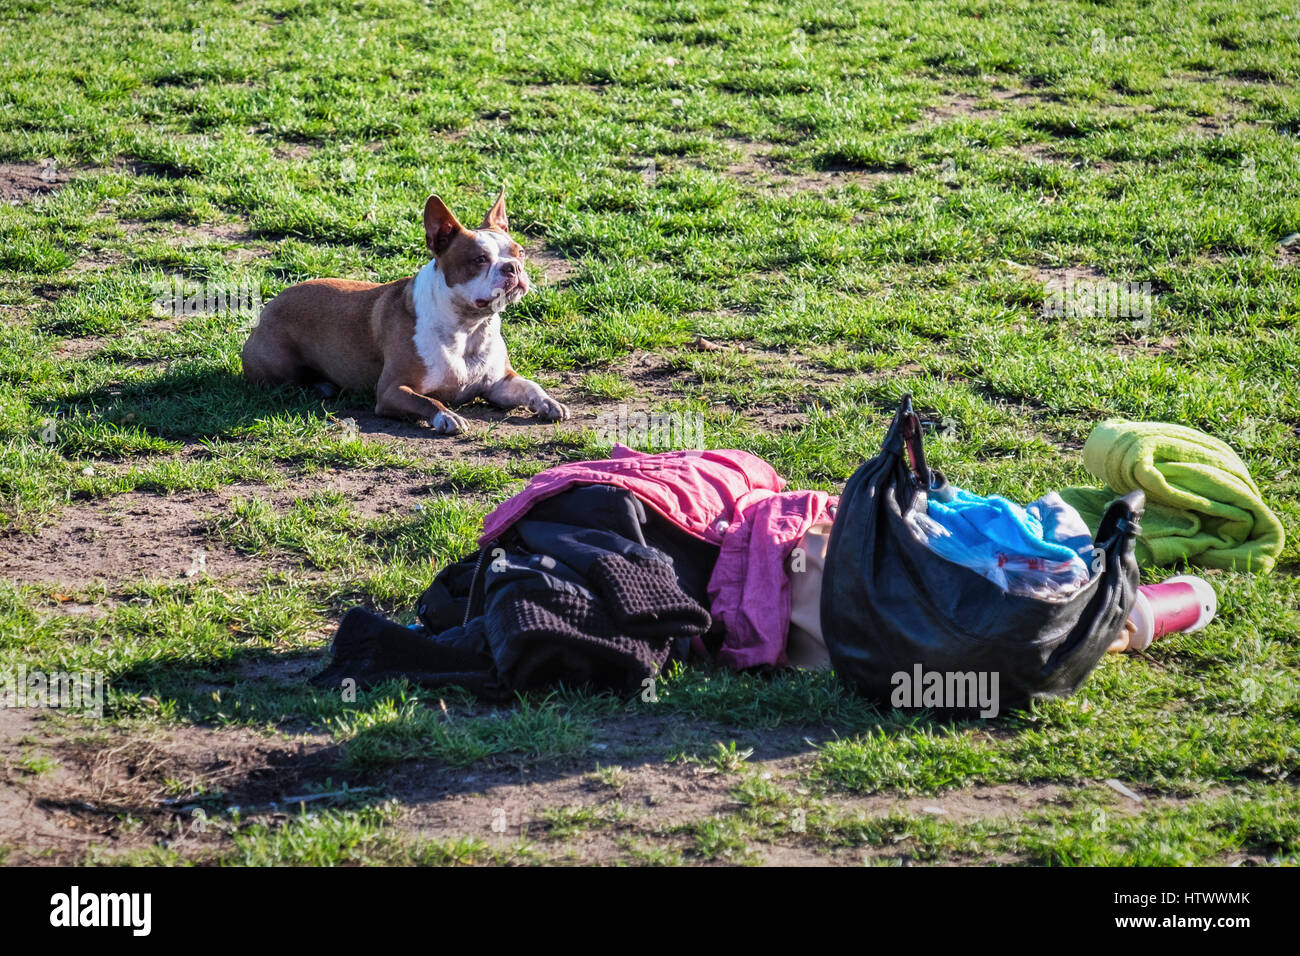 Berlin,Prenzlauer Berg. Mauer park, Wall park, A popular public park. Dog guarding possessions and bags in Mauerpark - Stock Image